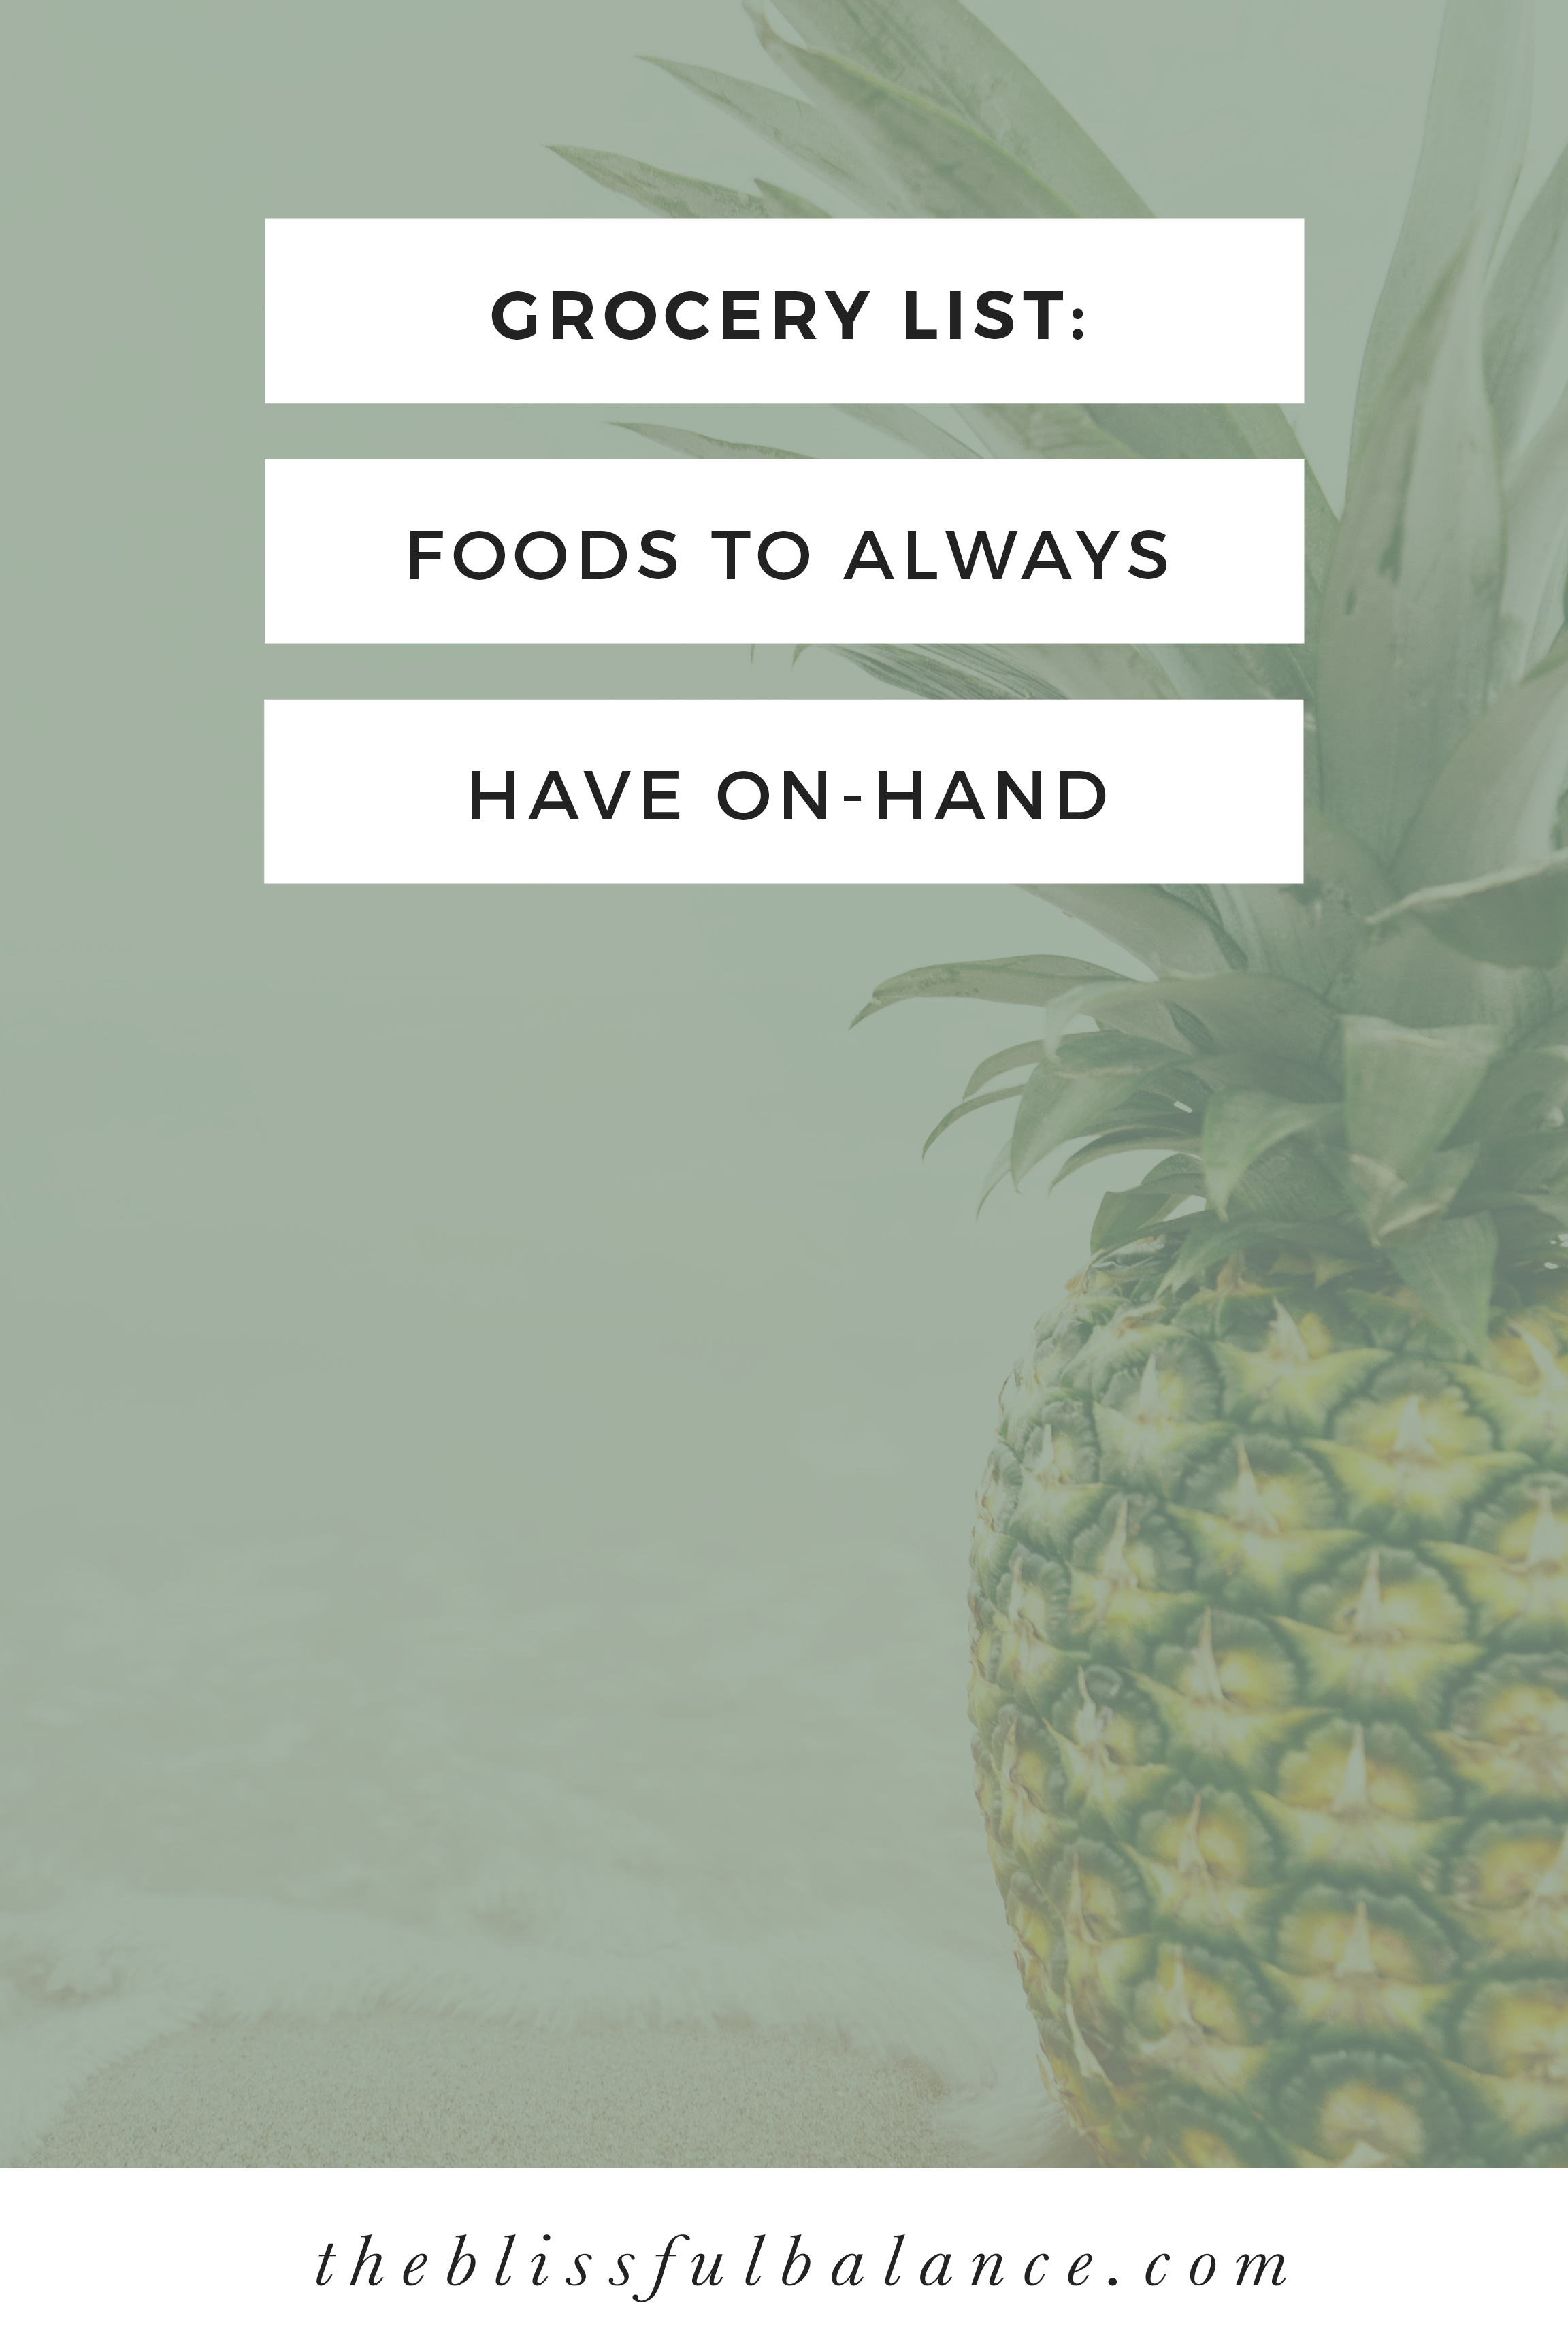 Grocery List of foods to always have on-hand. Click through to read more!